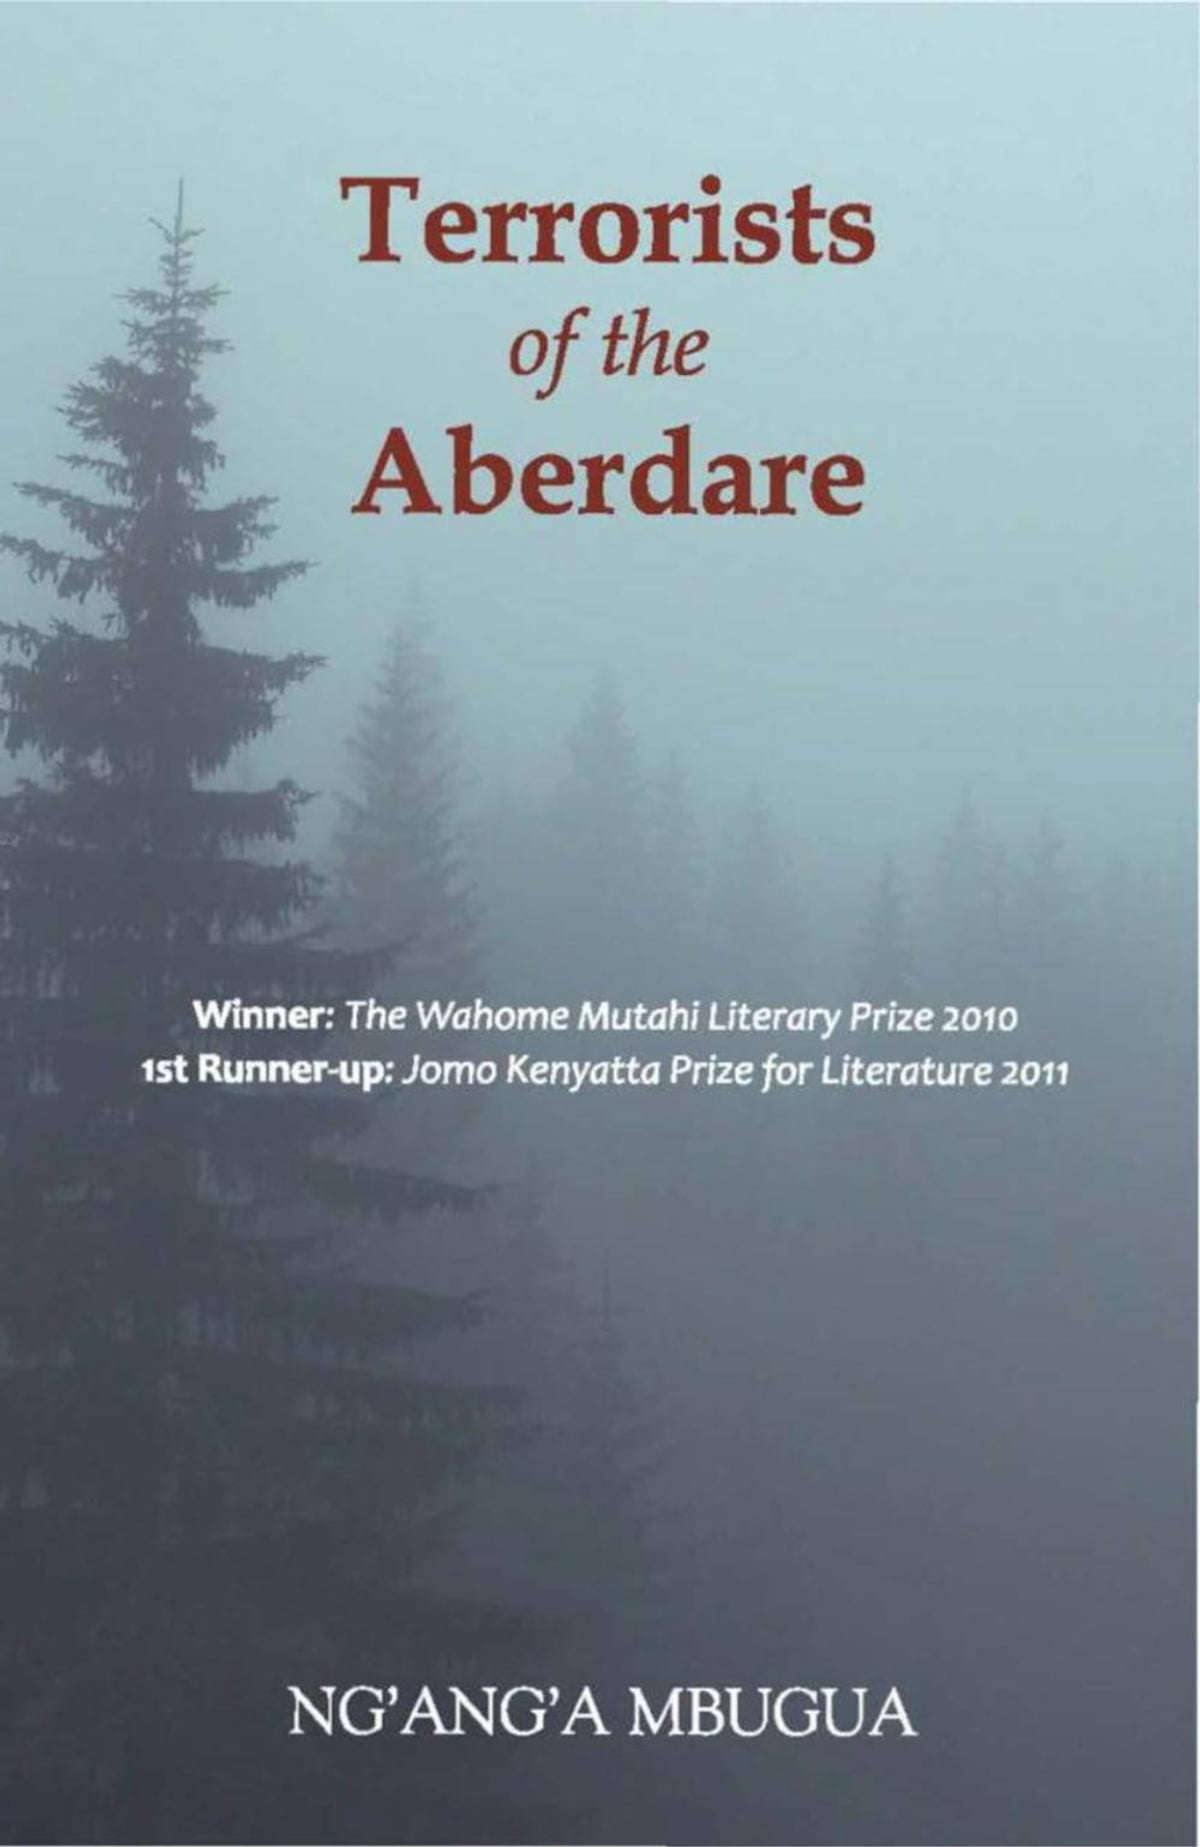 Terrorists of the aberdare ebook by nganga mbugua terrorists of the aberdare ebook by nganga mbugua 9789966694744 rakuten kobo fandeluxe PDF